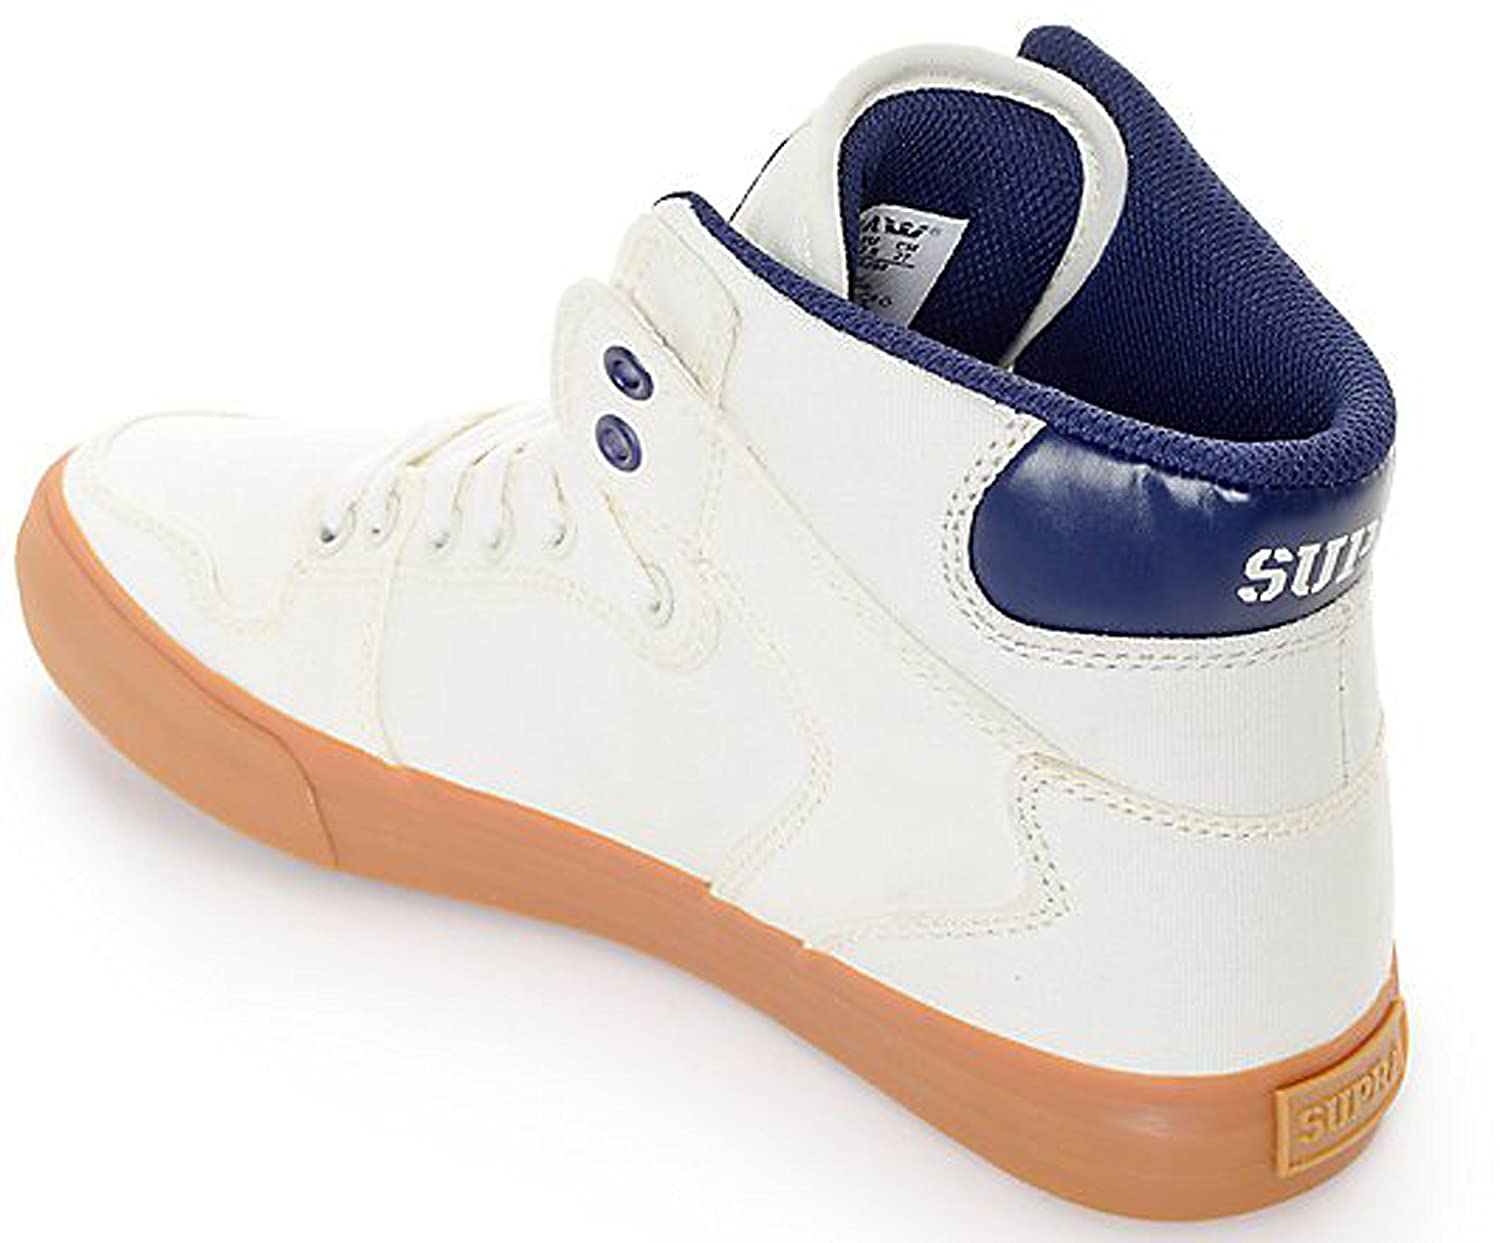 Supra Vaider LC Sneaker B011JIQLZE 13 M US|Off-white/Blue Nights/Gum